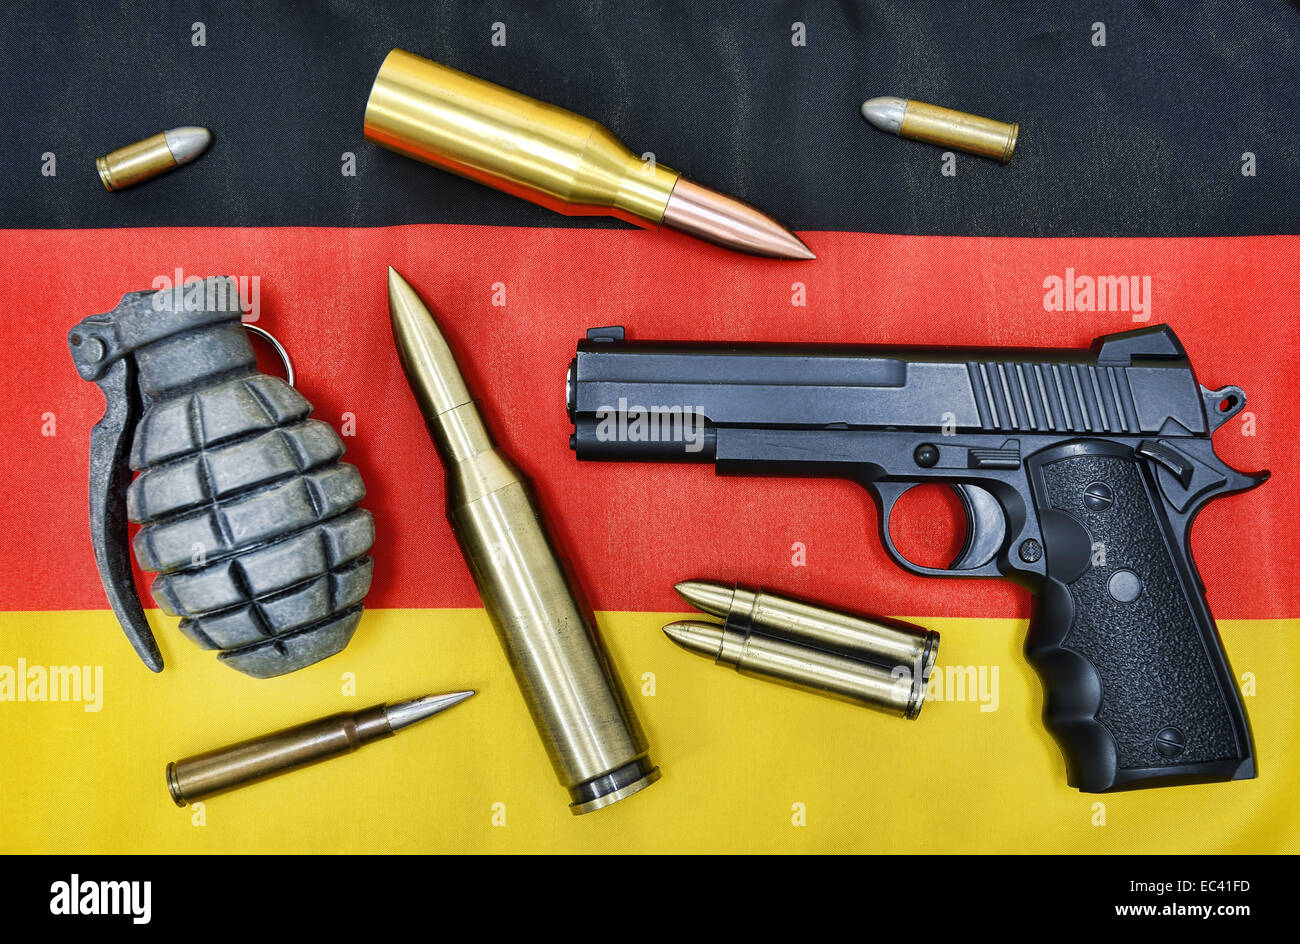 Weapons on German flag, German delivery of arms - Stock Image